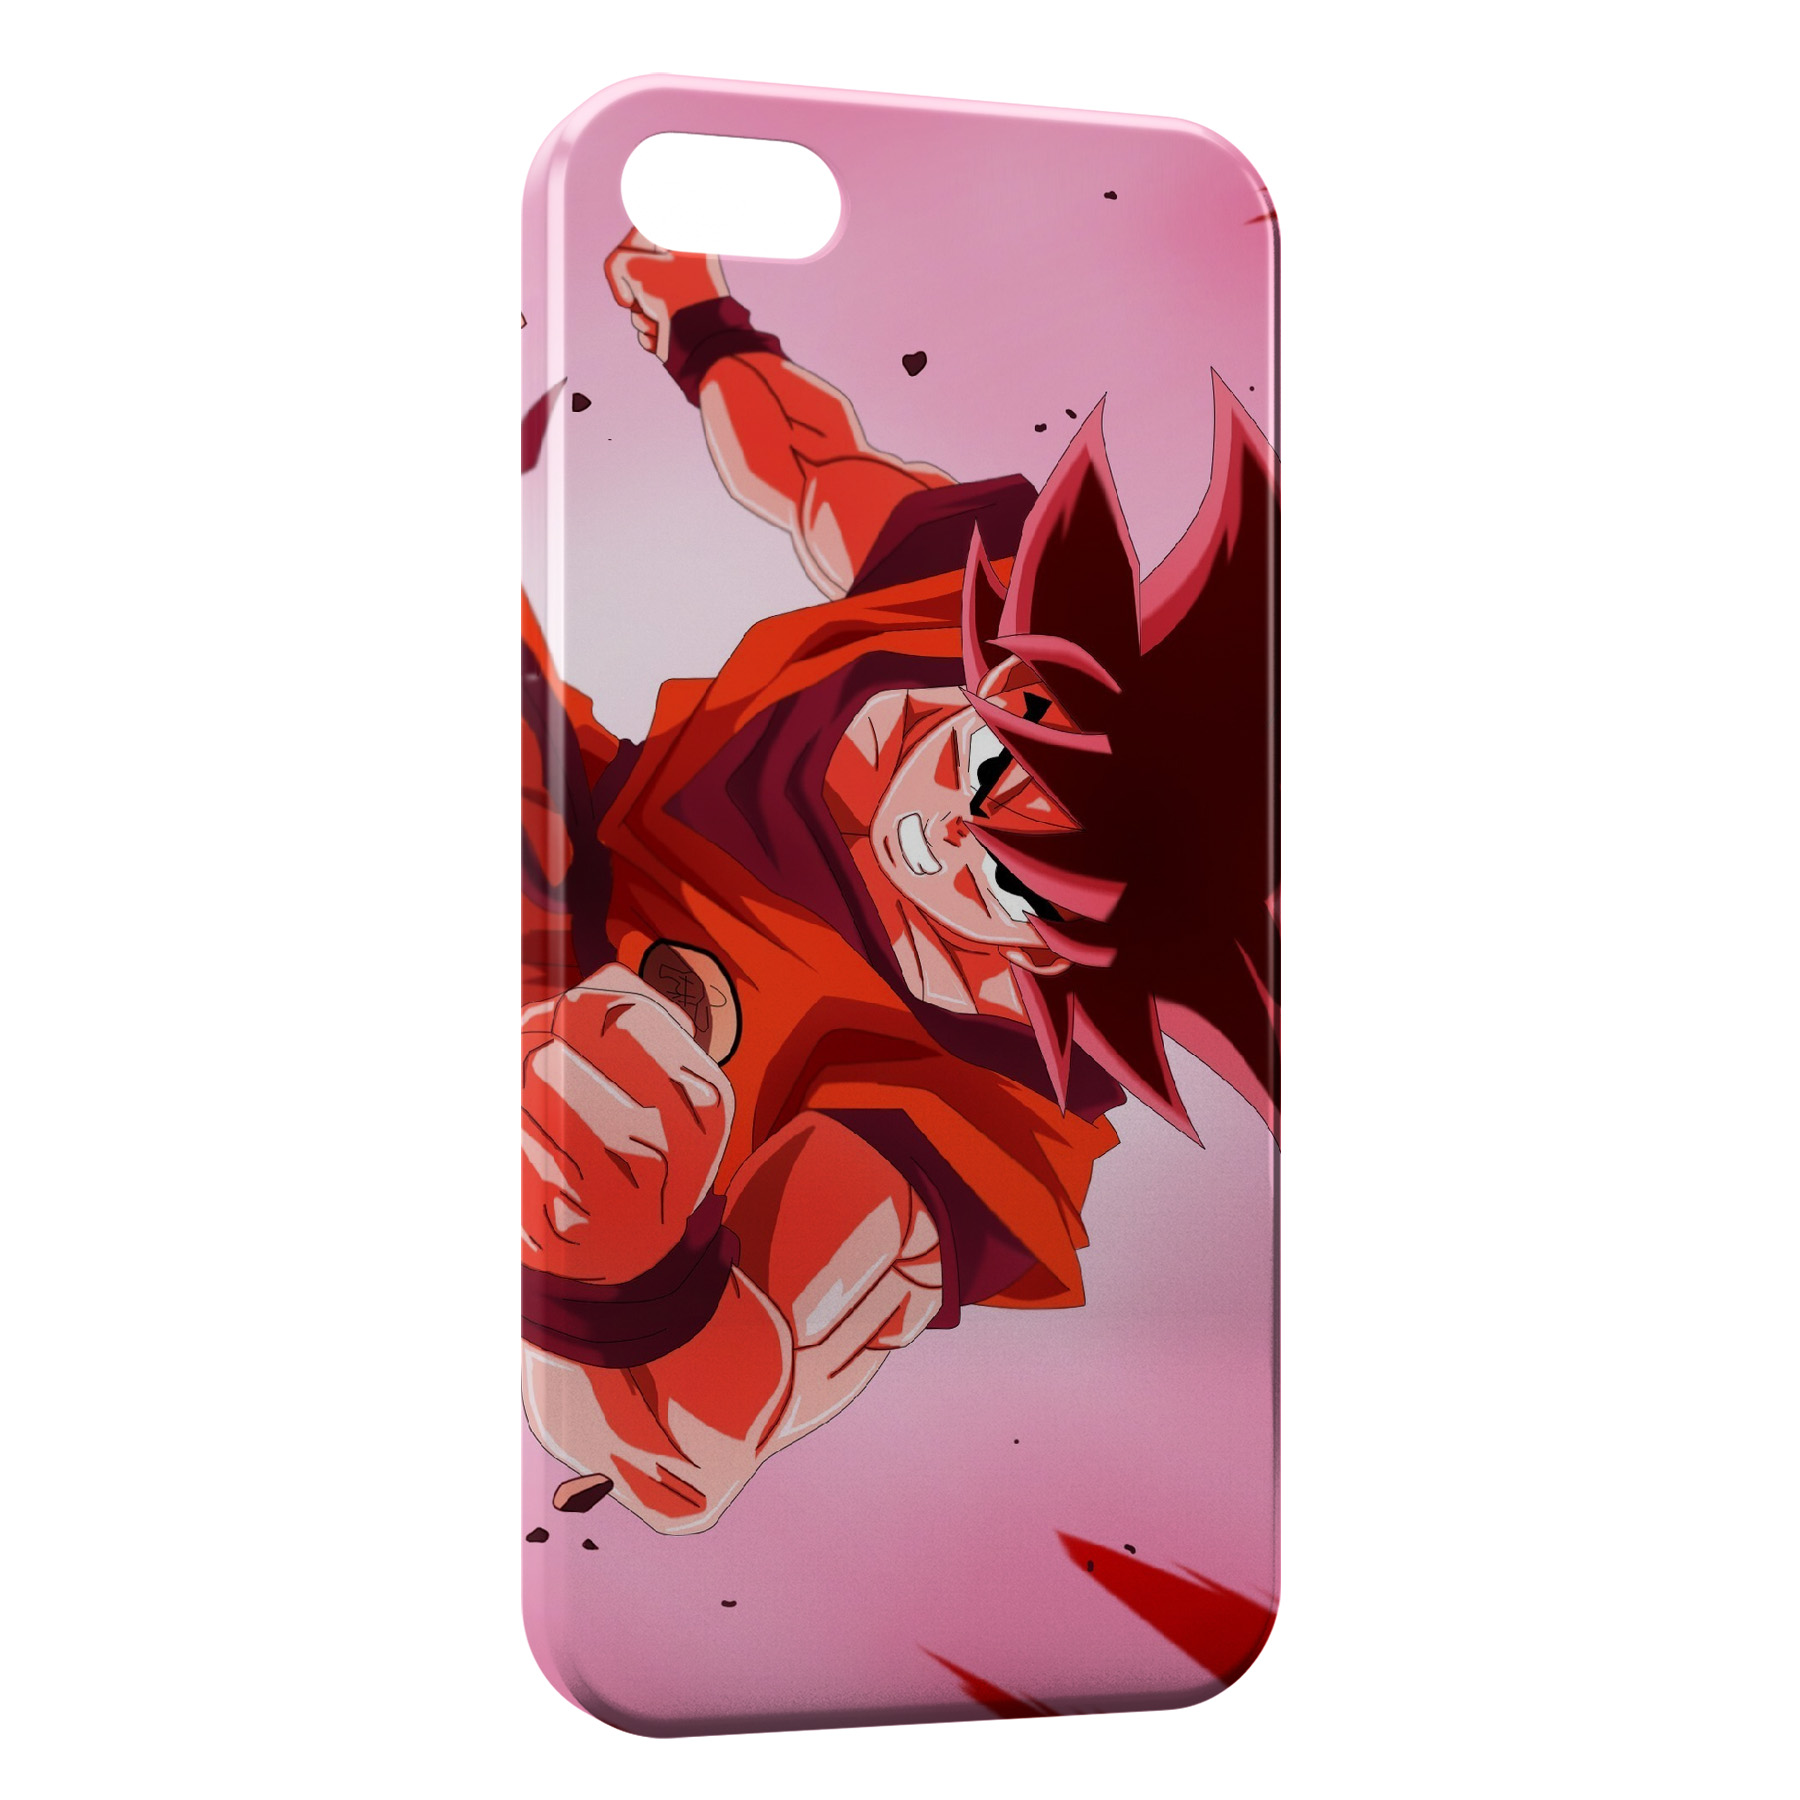 coque iphone 6 dragon ball z